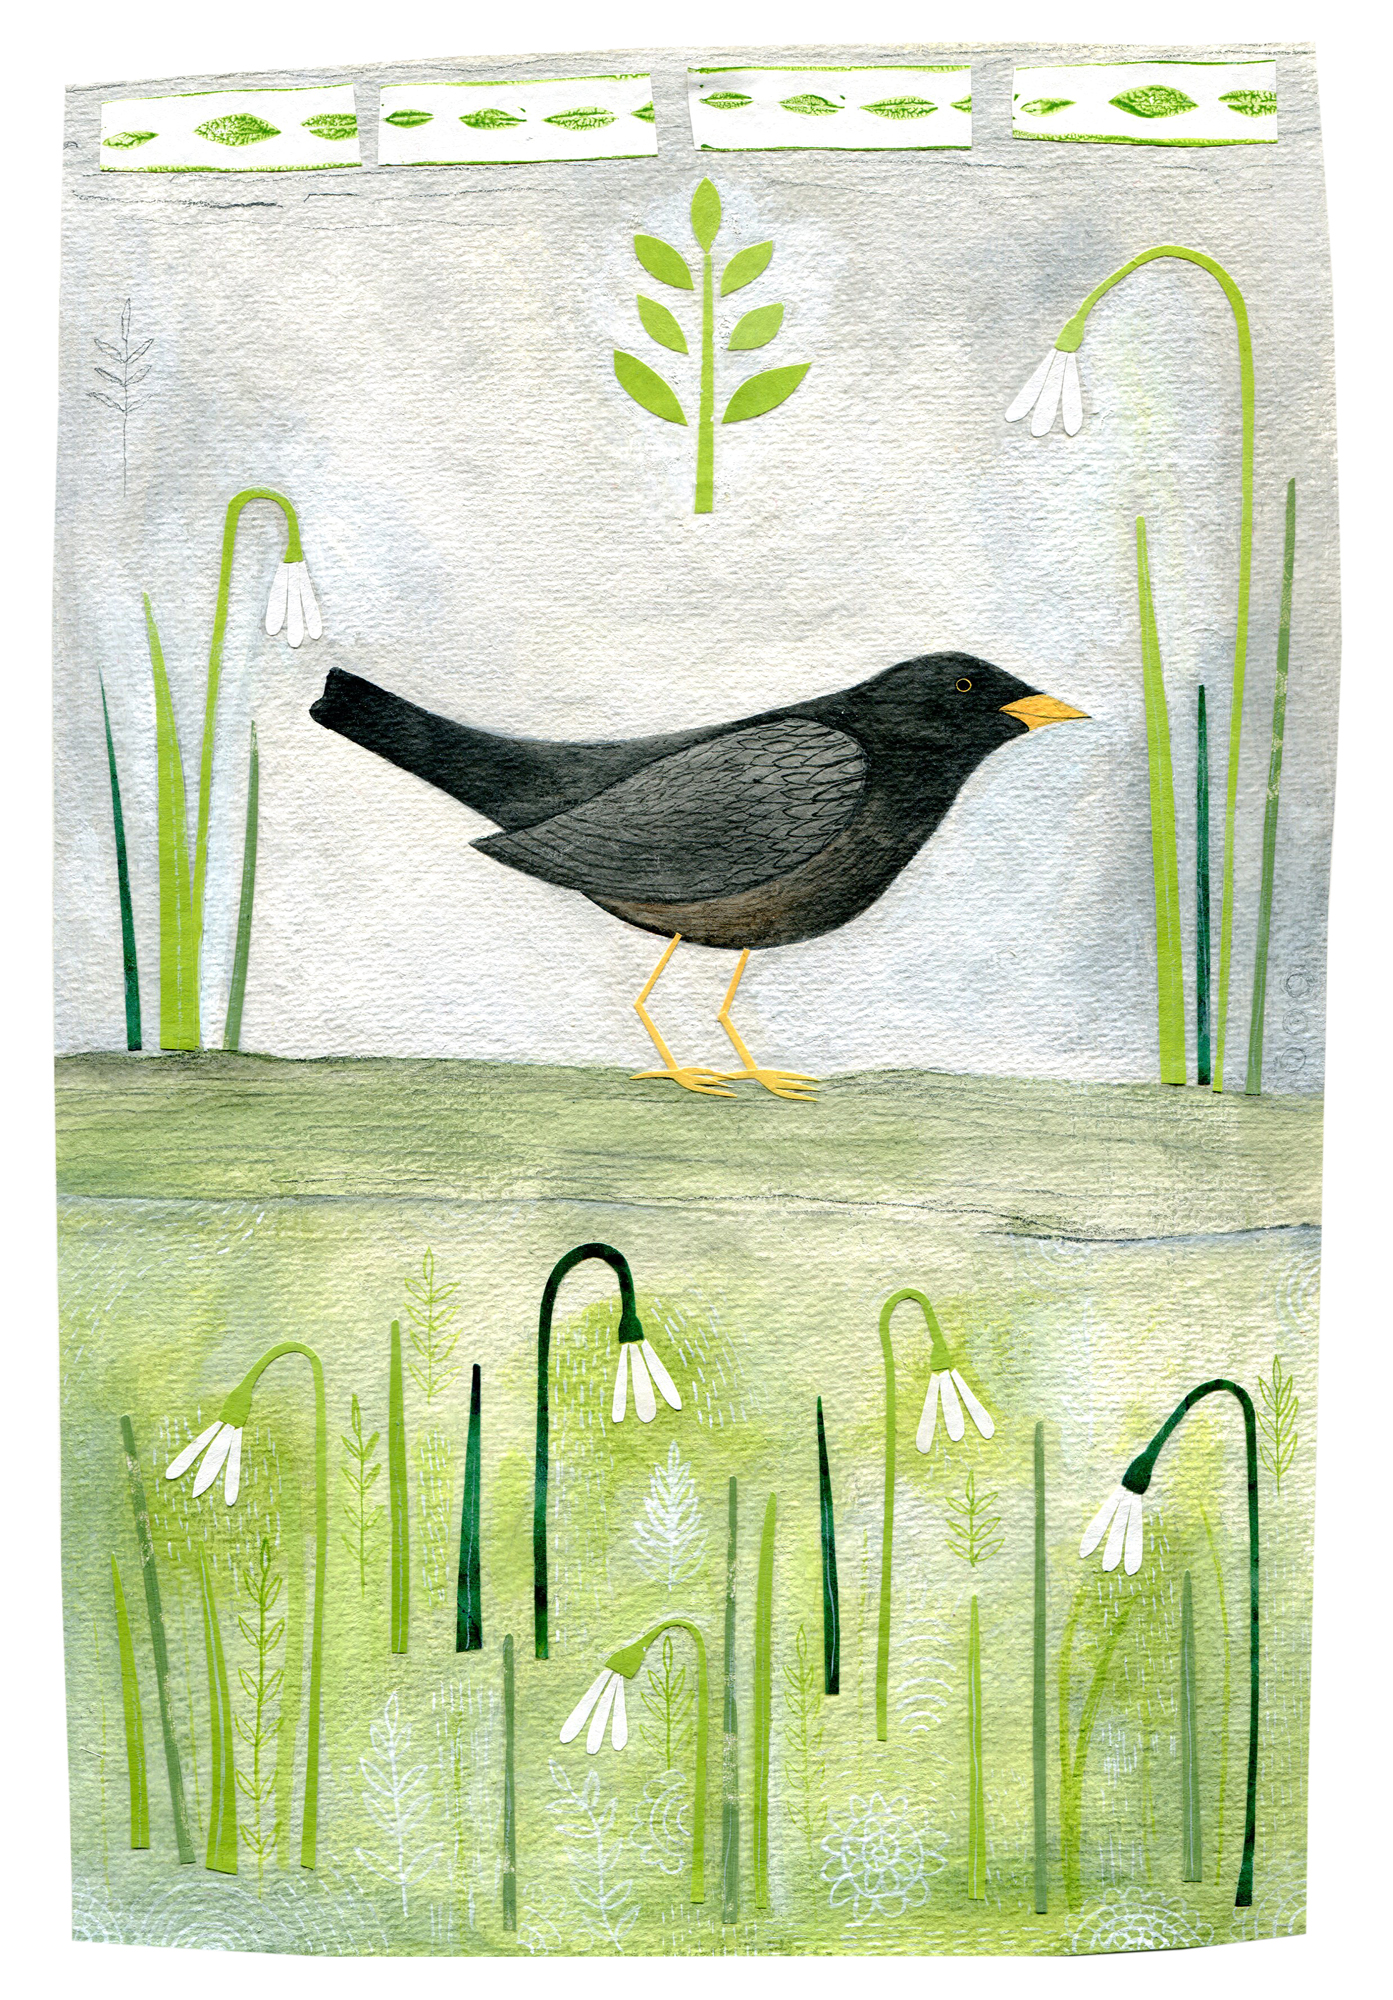 'Blackbird with Snowdrops' by Chloe Redfern, mixed media collage on Khadi paper, 28x19cm